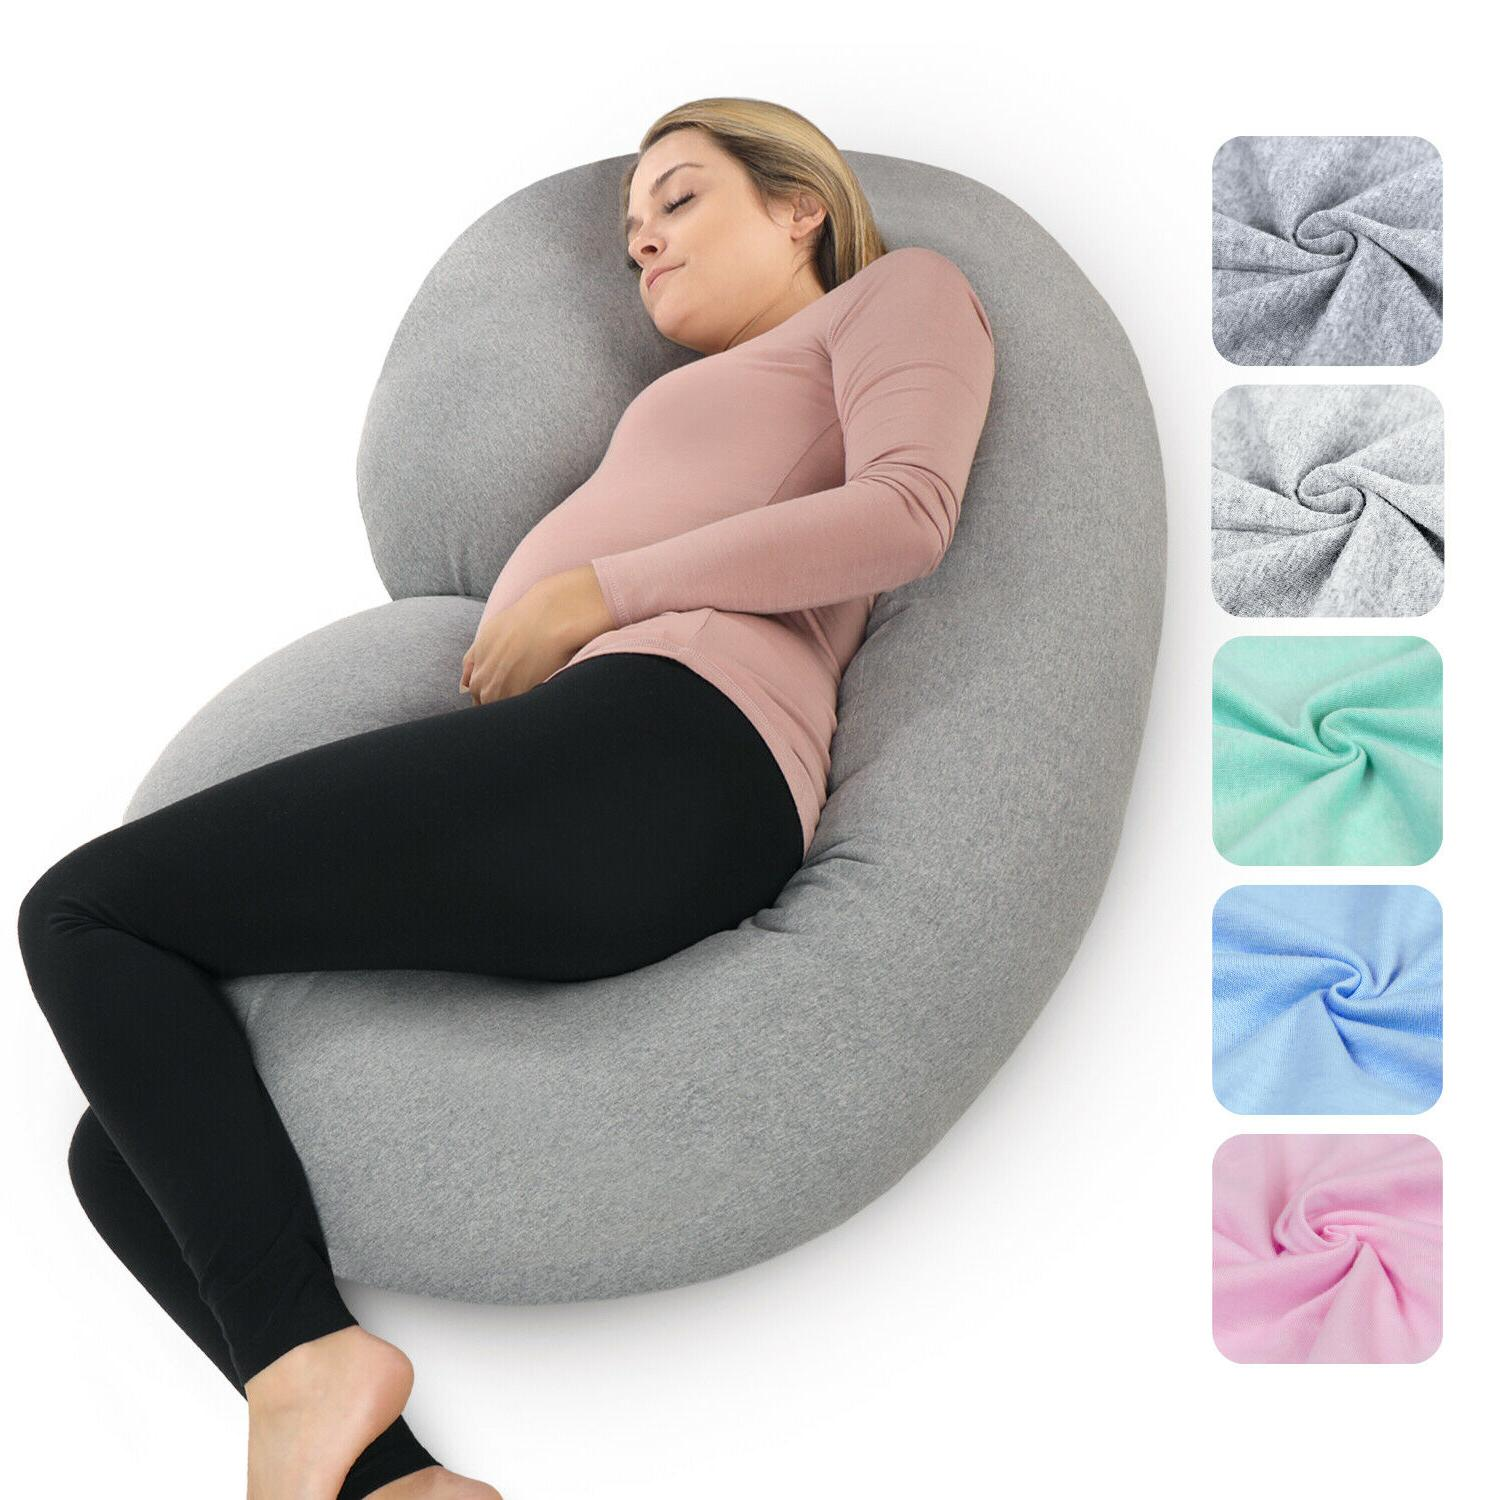 pregnancy pillow full body pillow for maternity